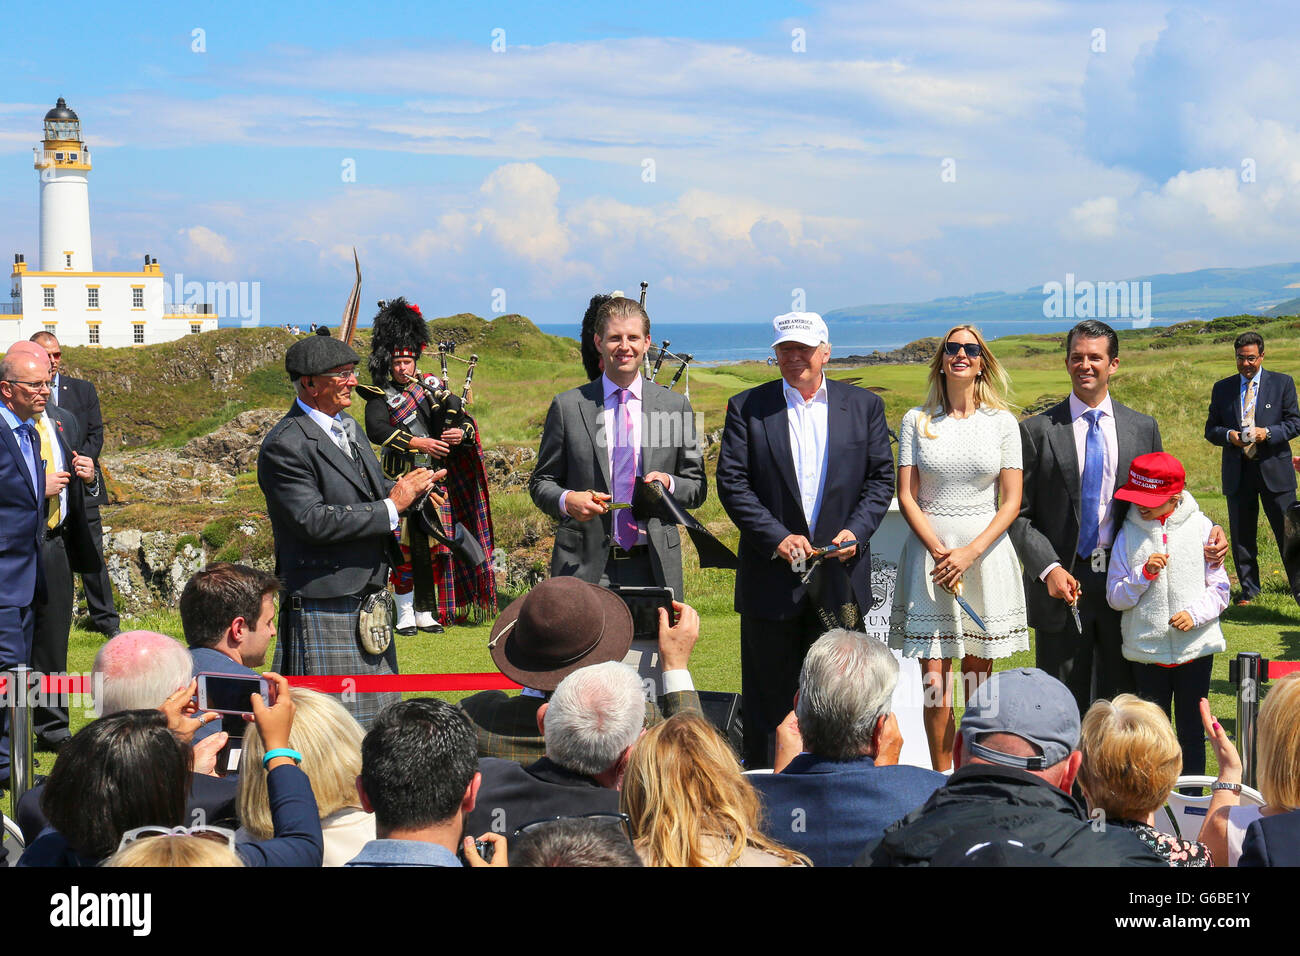 Turnberry, Scotland, UK. 24th June, 2016. Donald Trump flew into Scotland today to officially open his multimillion - Stock Image